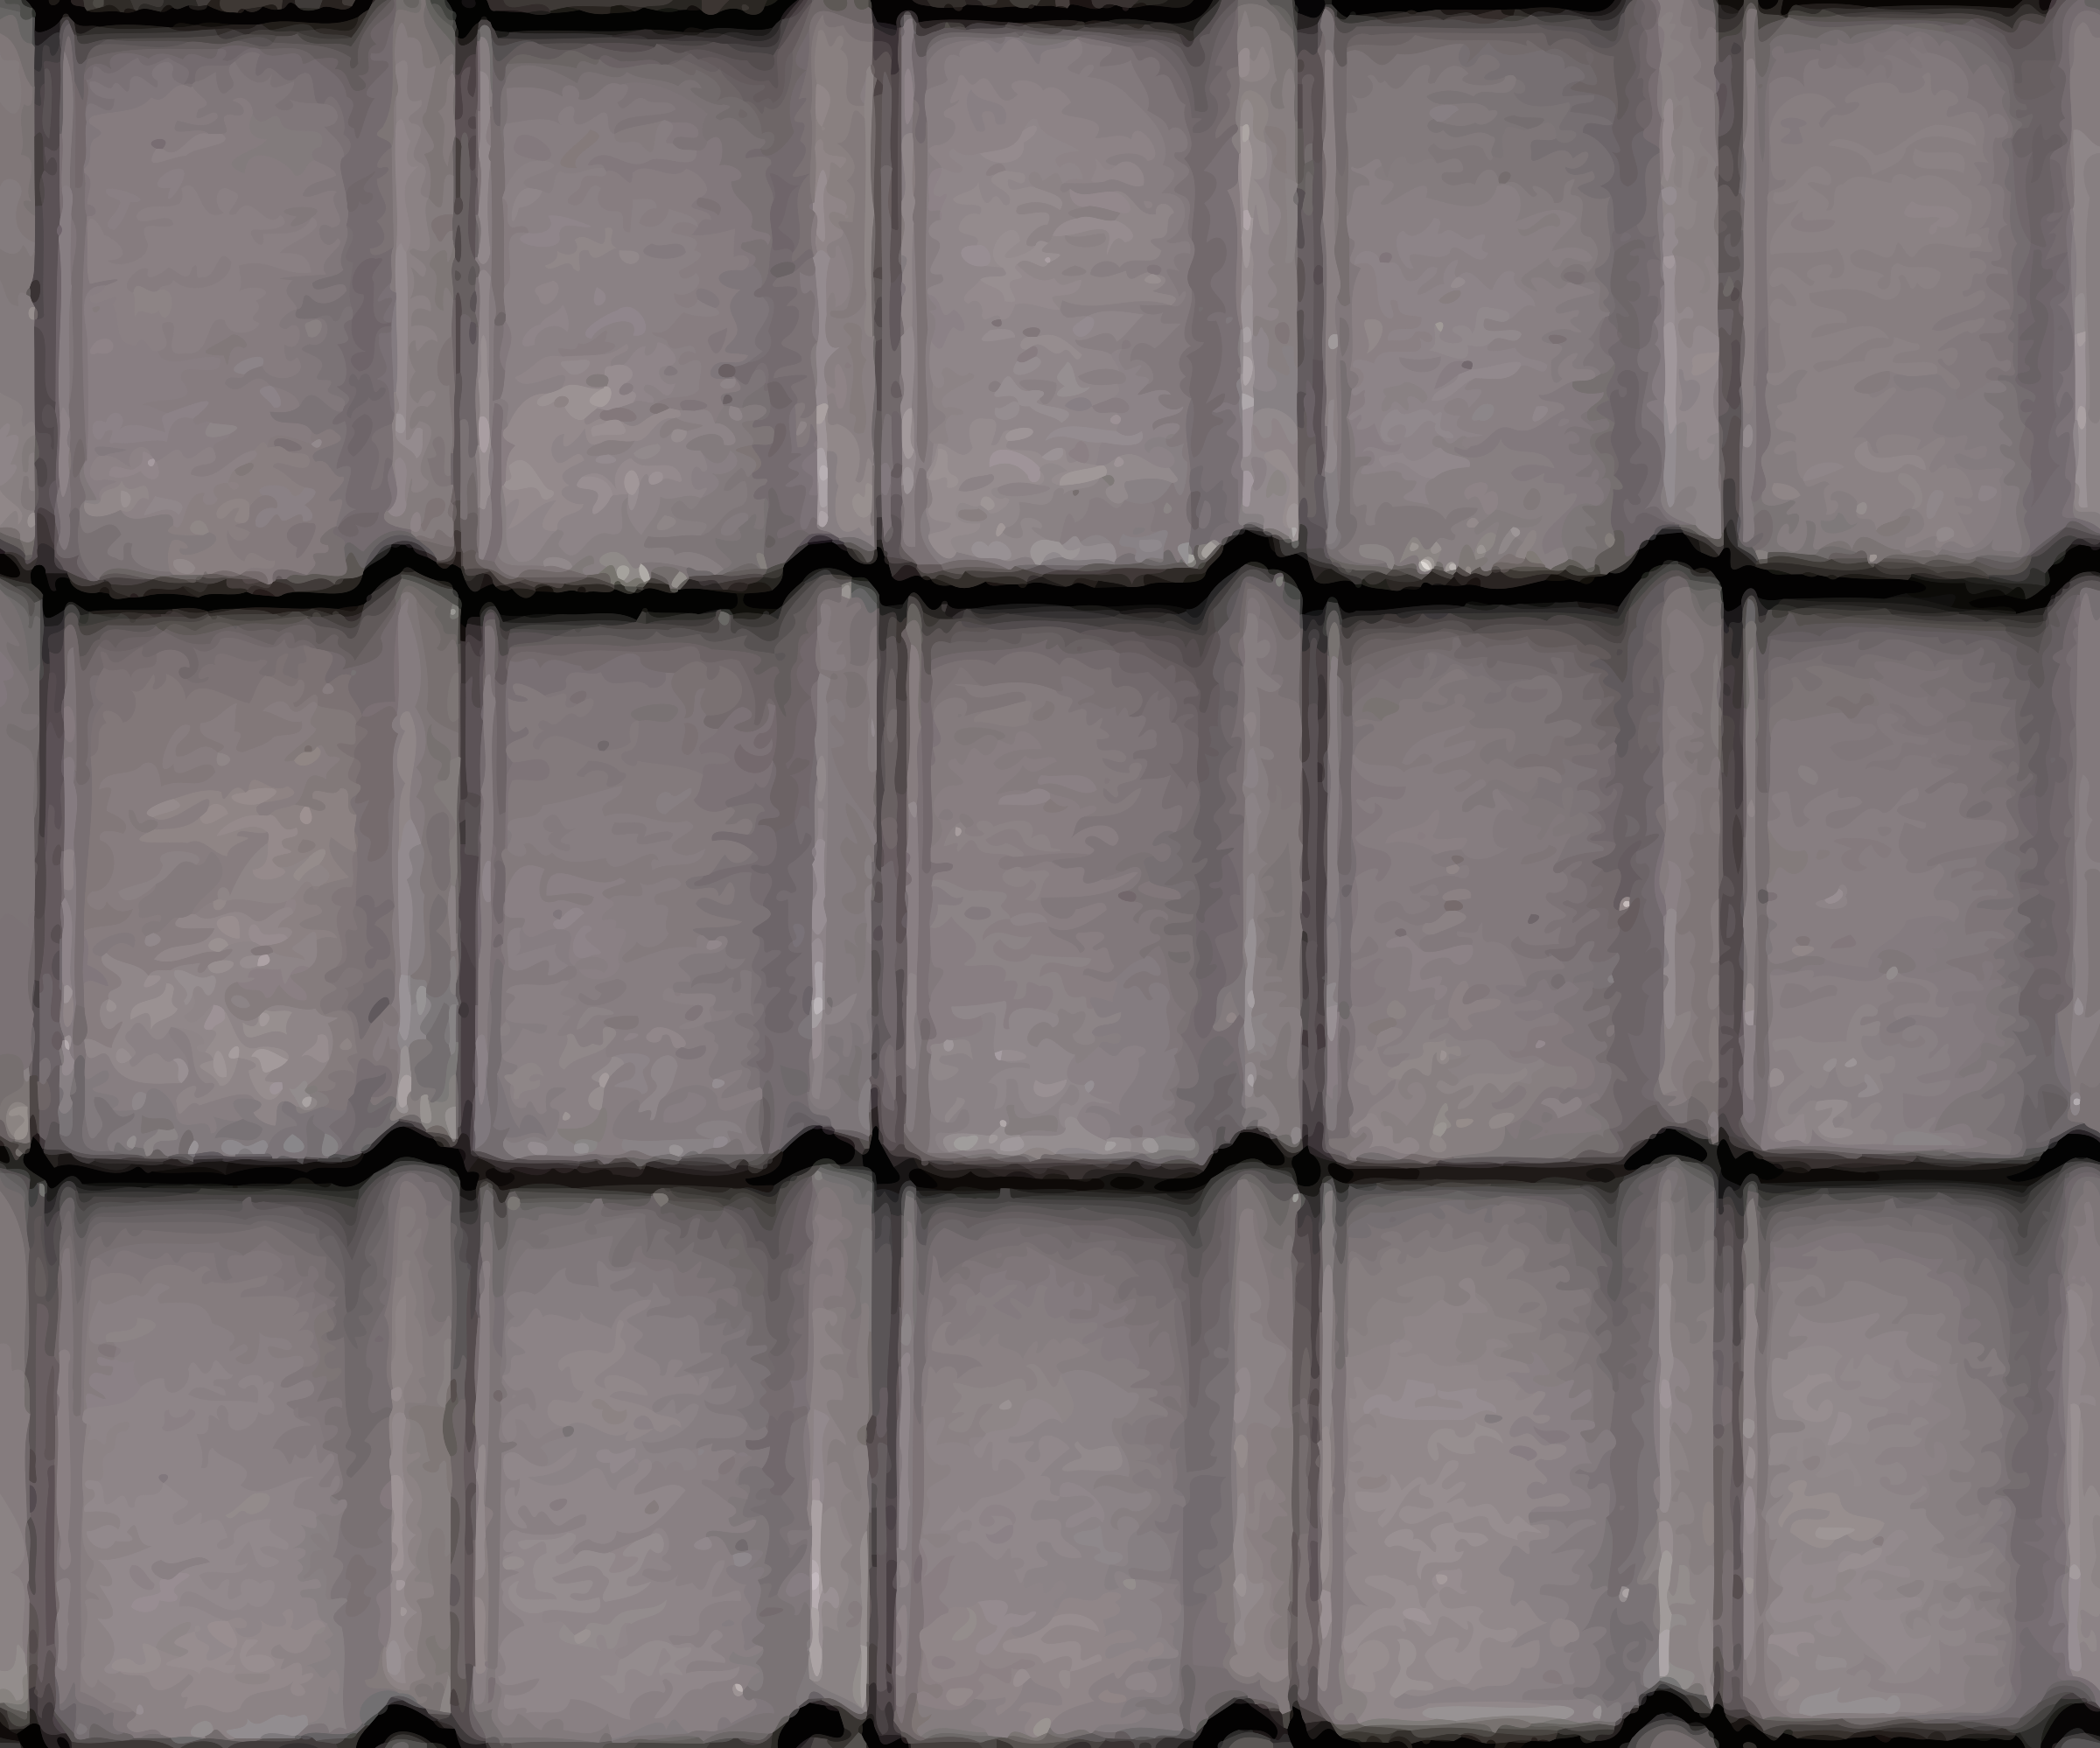 Clipart - Ribbed roof tiles 2